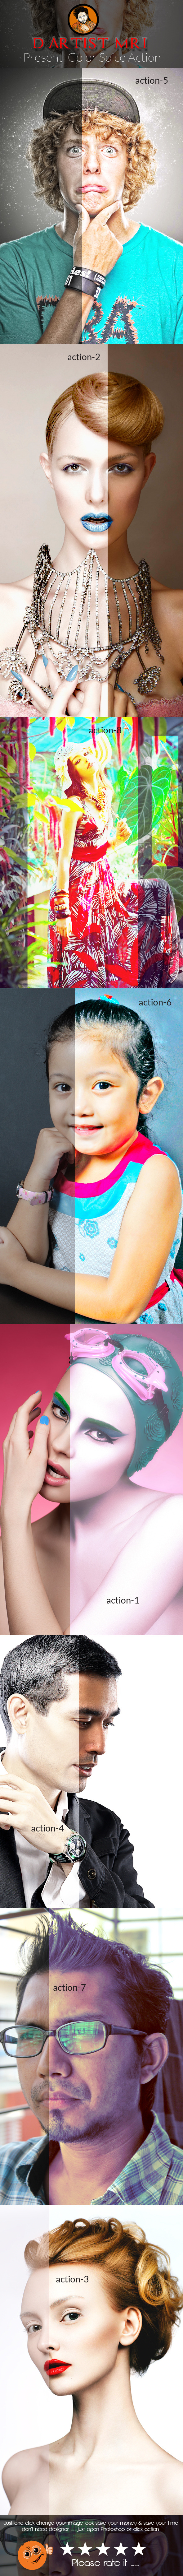 Color Spice Action - Actions Photoshop